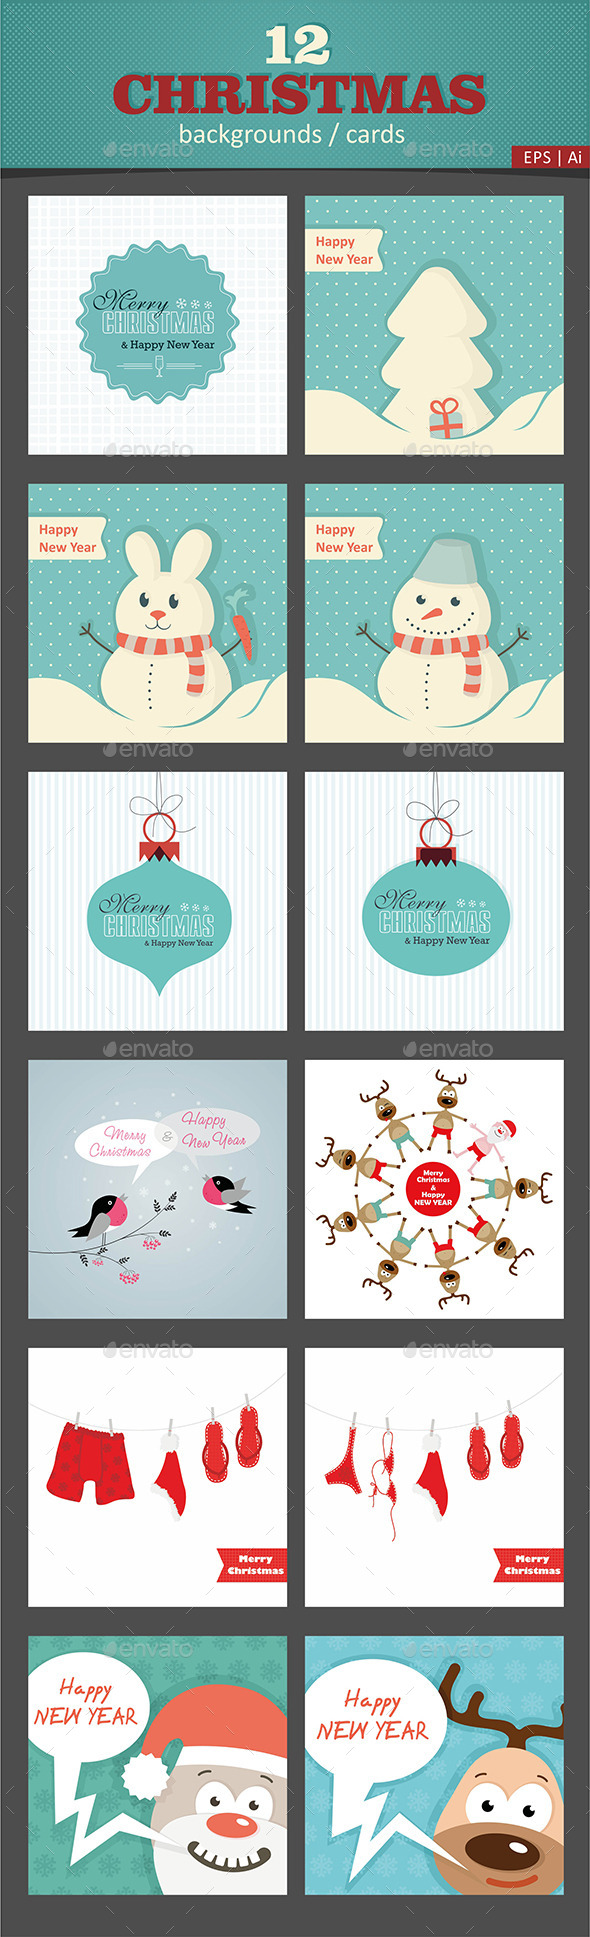 GraphicRiver 12 Christmas Vector Cards Backgrounds 9511795